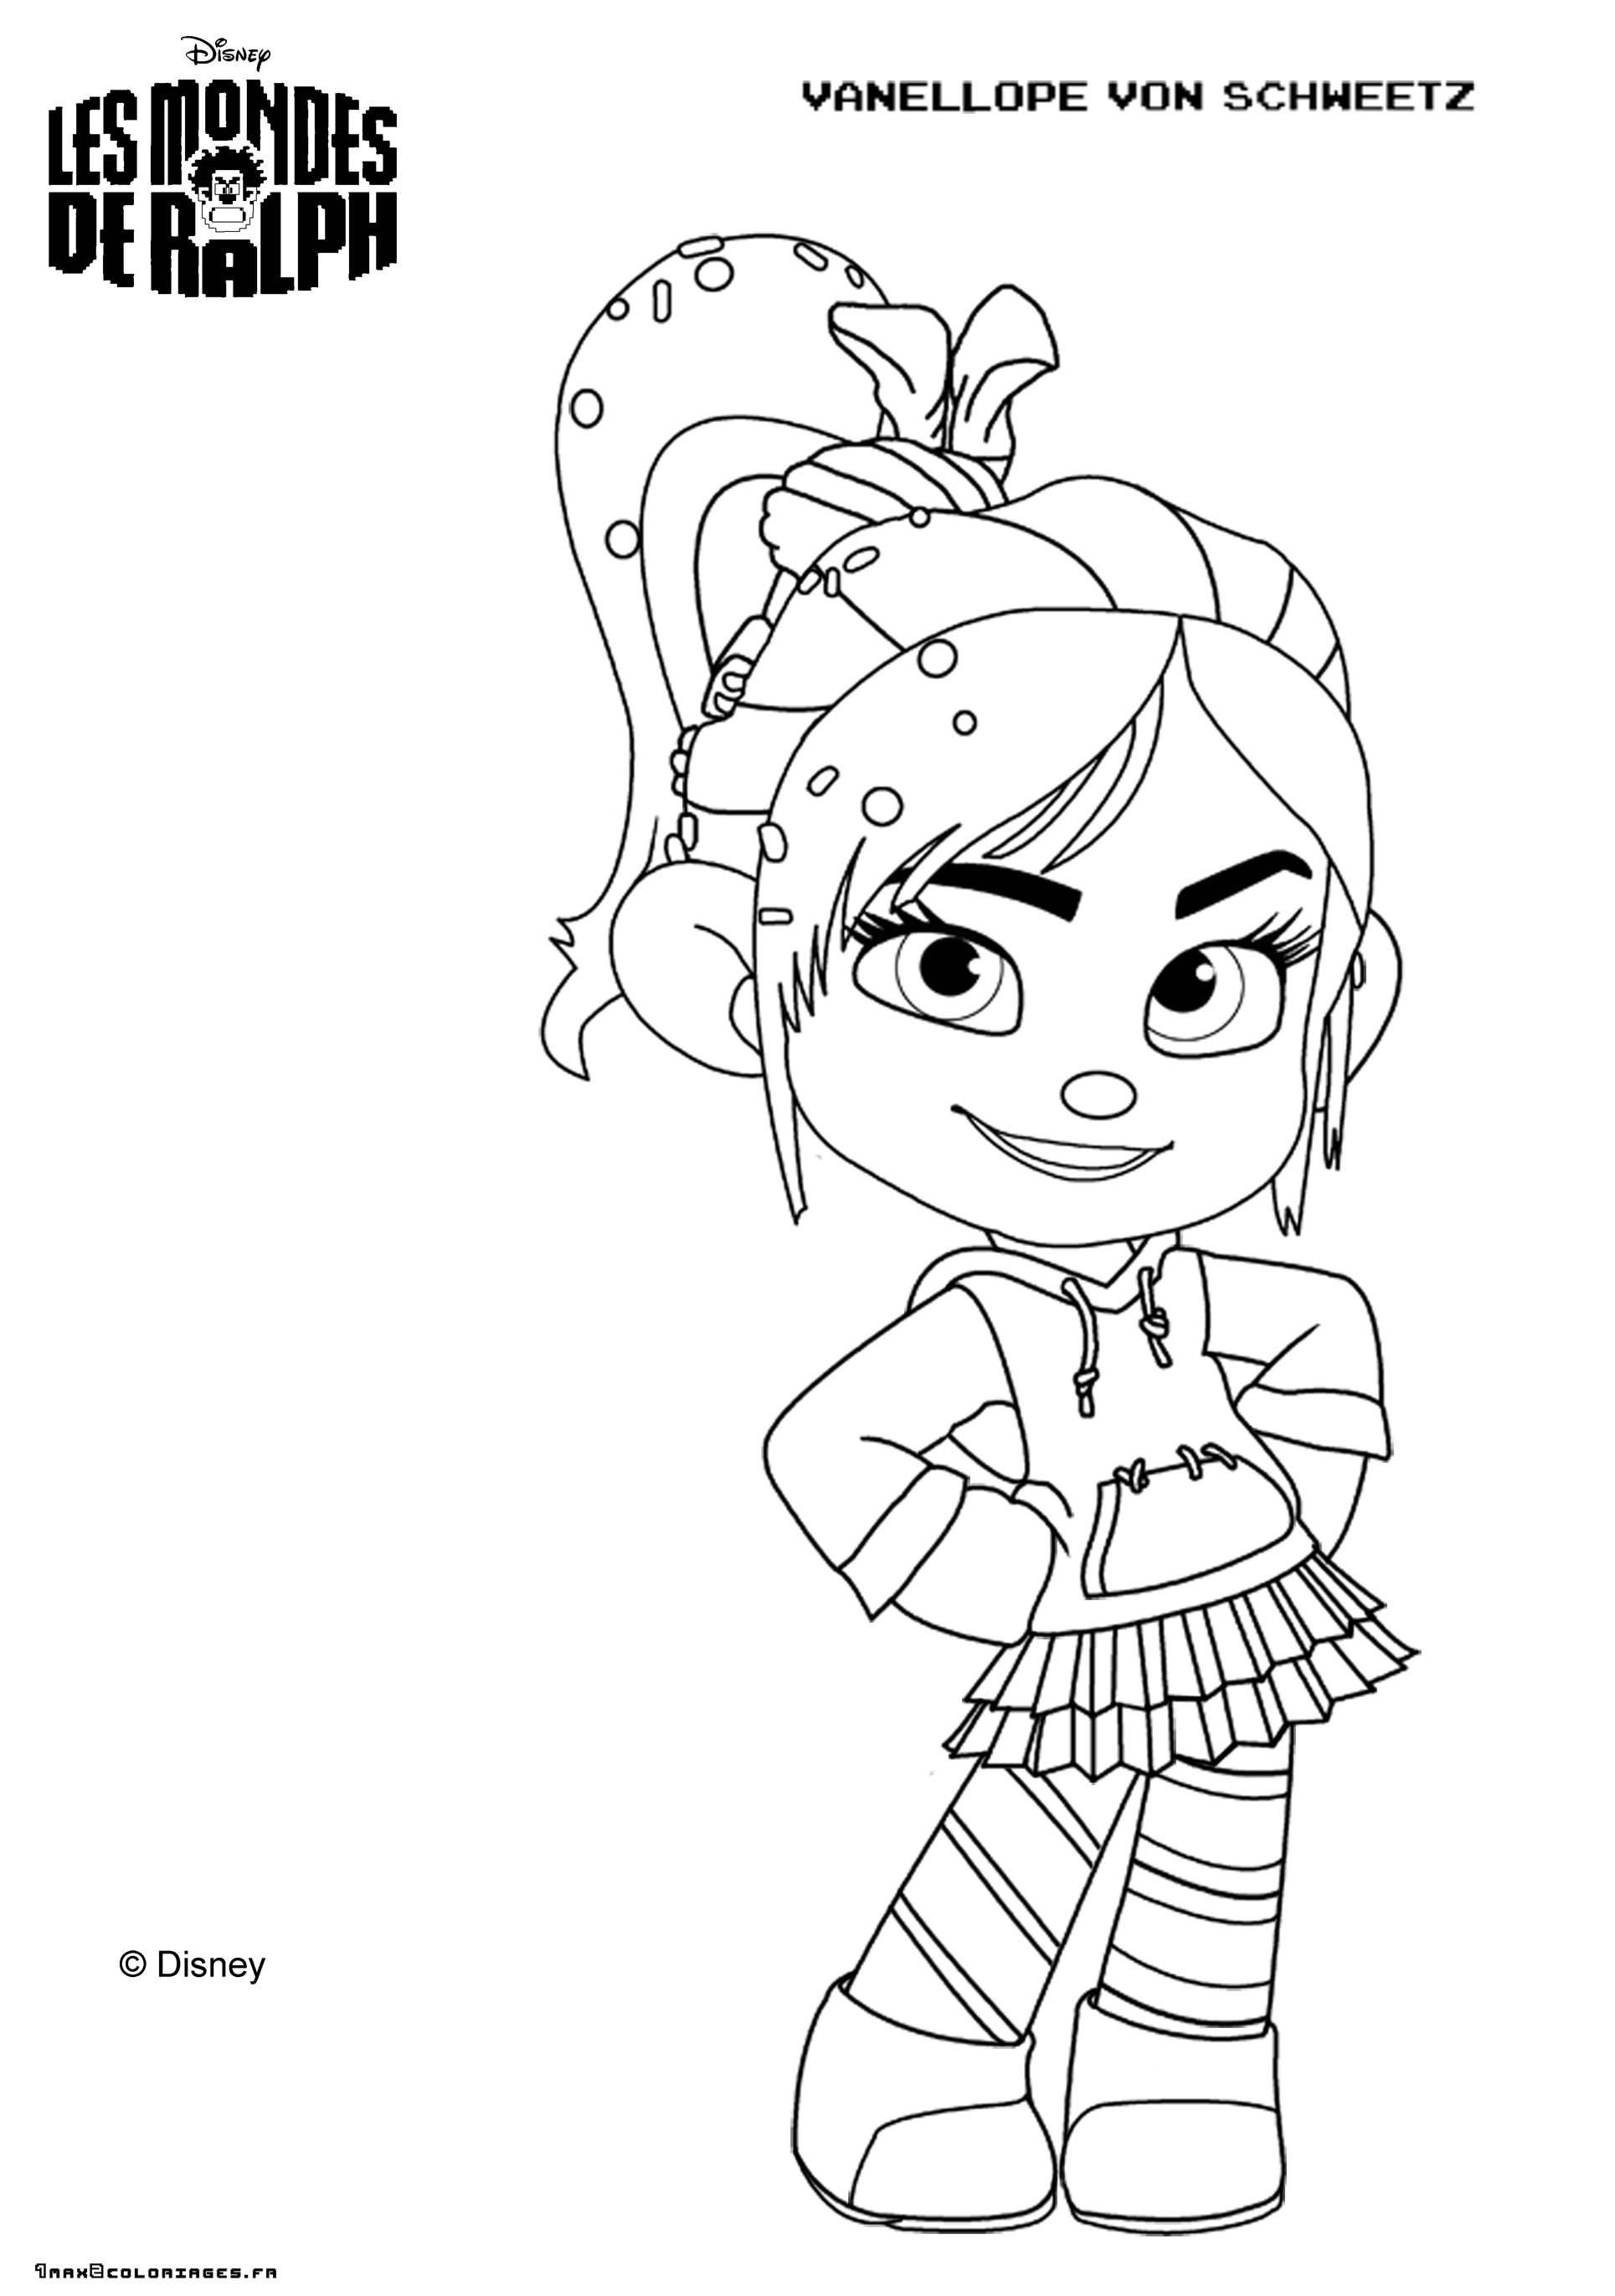 les mondes de ralph_vanellope von schweetz_HD including disney infinity coloring pages to print 1 on disney infinity coloring pages to print likewise swedish chef muppets coloring pages on disney infinity coloring pages to print furthermore disney infinity coloring pages to print 3 on disney infinity coloring pages to print likewise disney infinity coloring pages to print 4 on disney infinity coloring pages to print